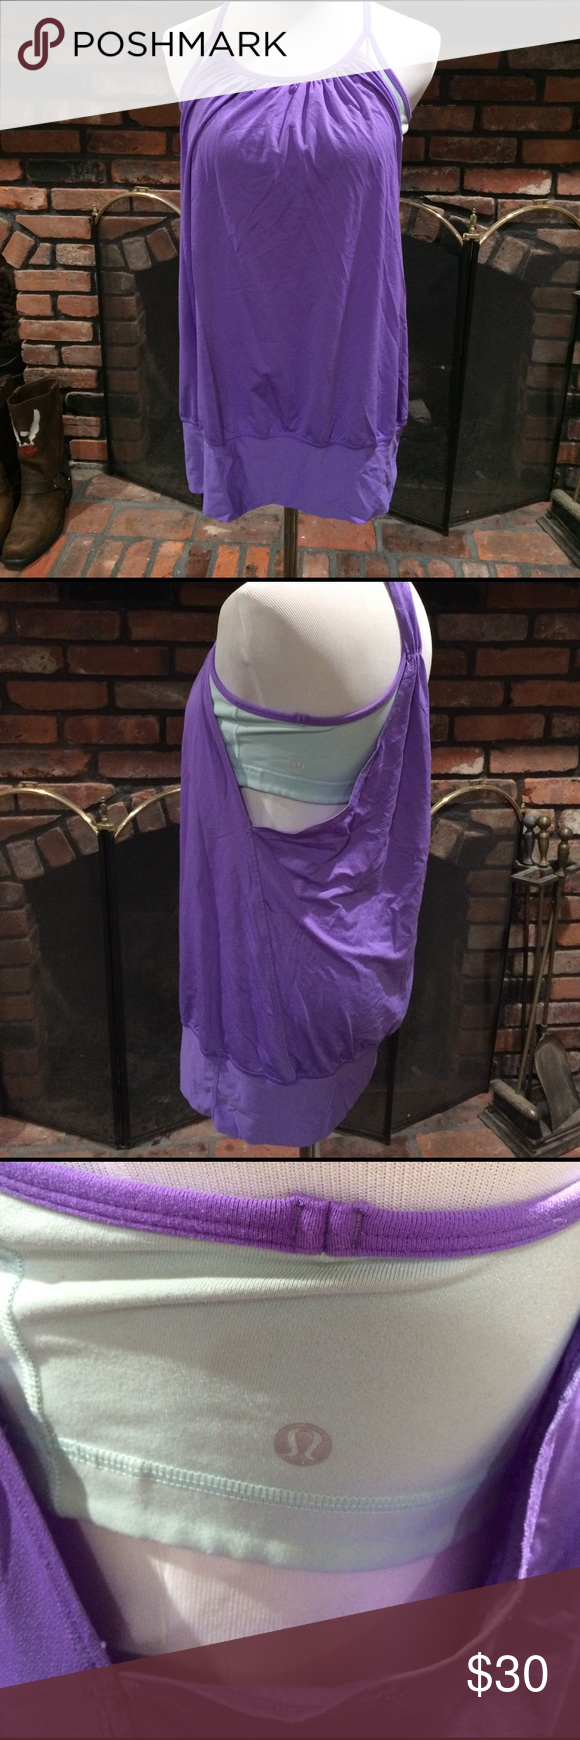 Lululemon tank size 10 Lululemon tank size 10.  Pretty lavender and Aqua blue tank top.  Built in bra no padding, but a place for padding.  Good used condition. lululemon athletica Tops Tank Tops